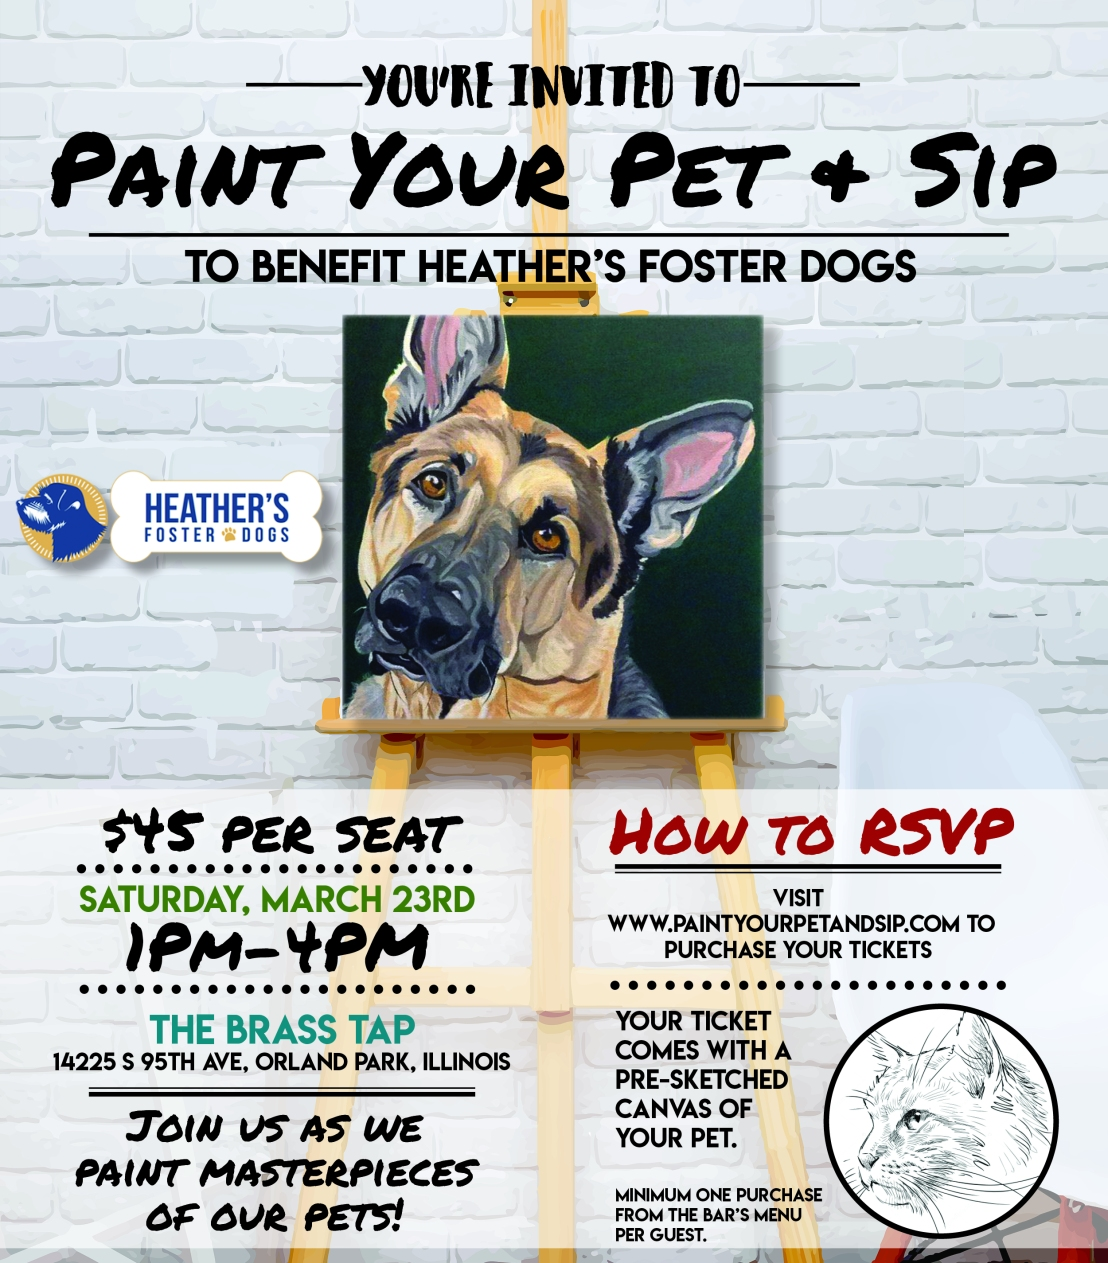 paintyourpet_heathersfosterdogs_brasstap.jpg